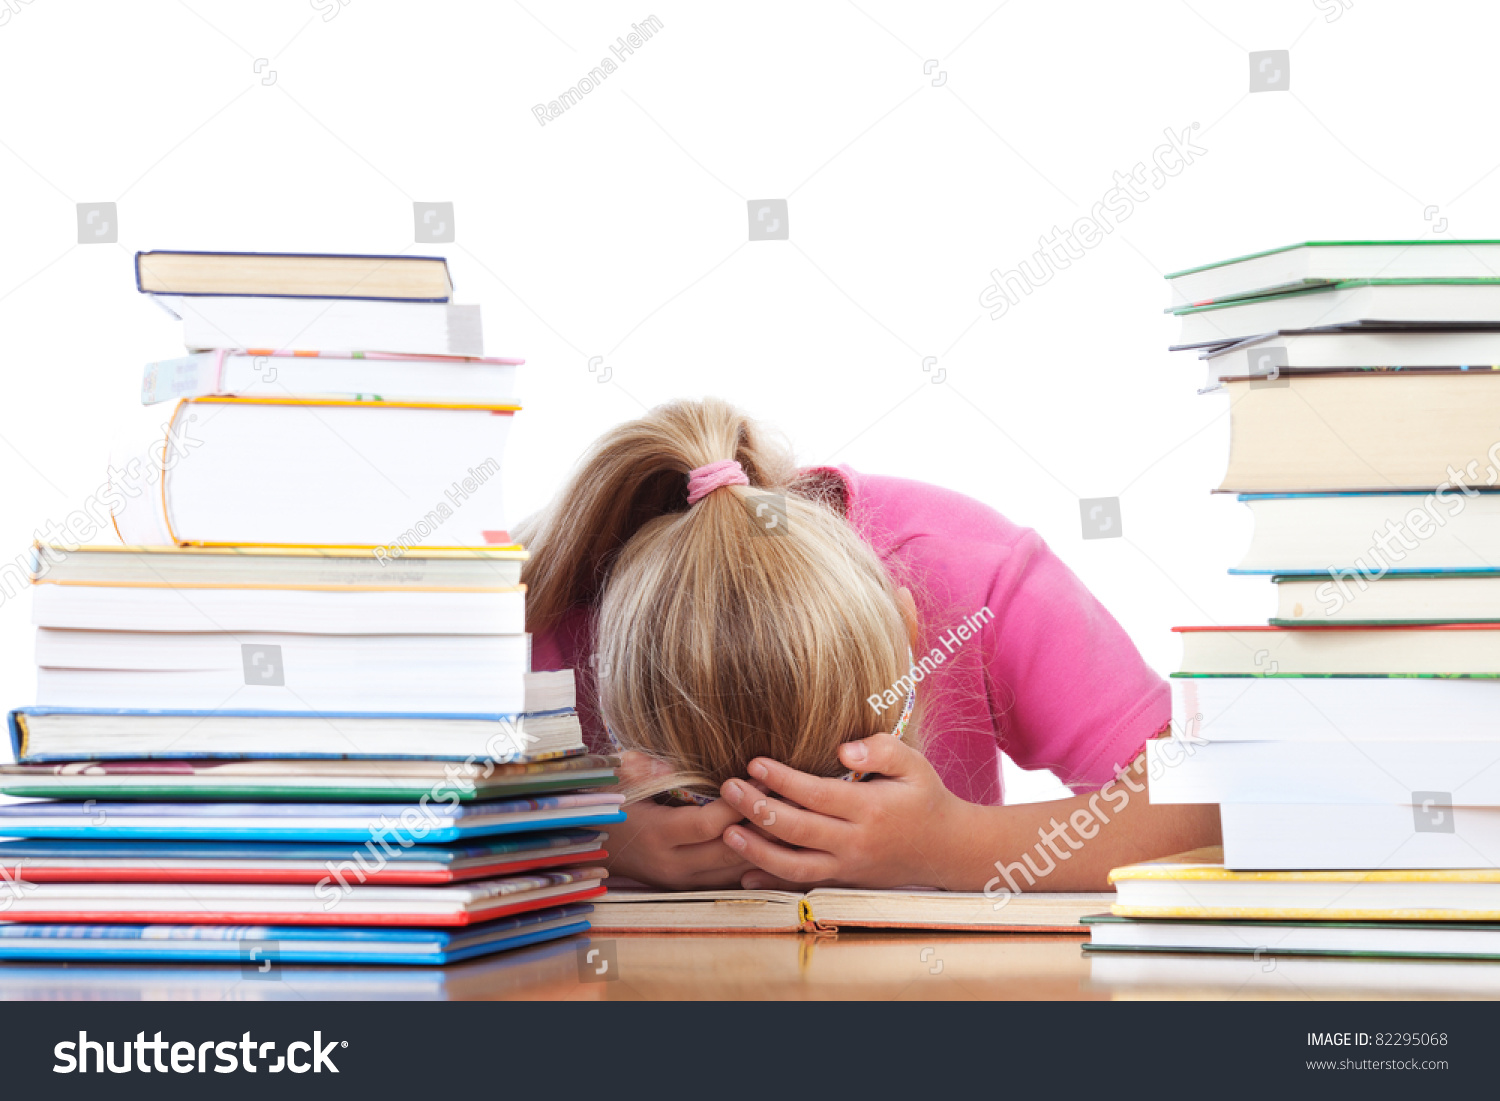 Paper writing jobs, Word essay how many pages double spaced